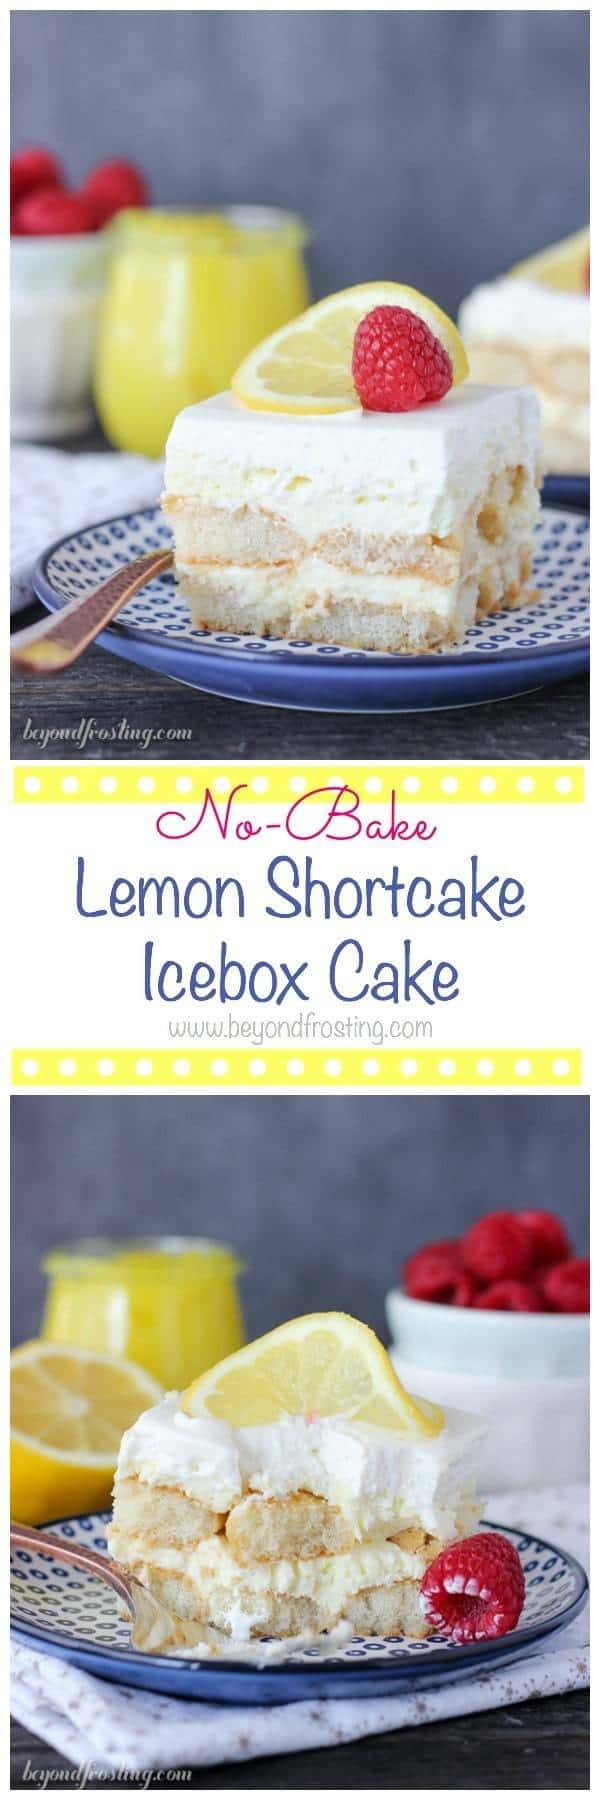 This No-Bake Lemon Shortcake Icebox Cake is layers of soft ladyfingers, lemon cheesecake mousse and whipped cream. This is one recipe you'll make time and time again.